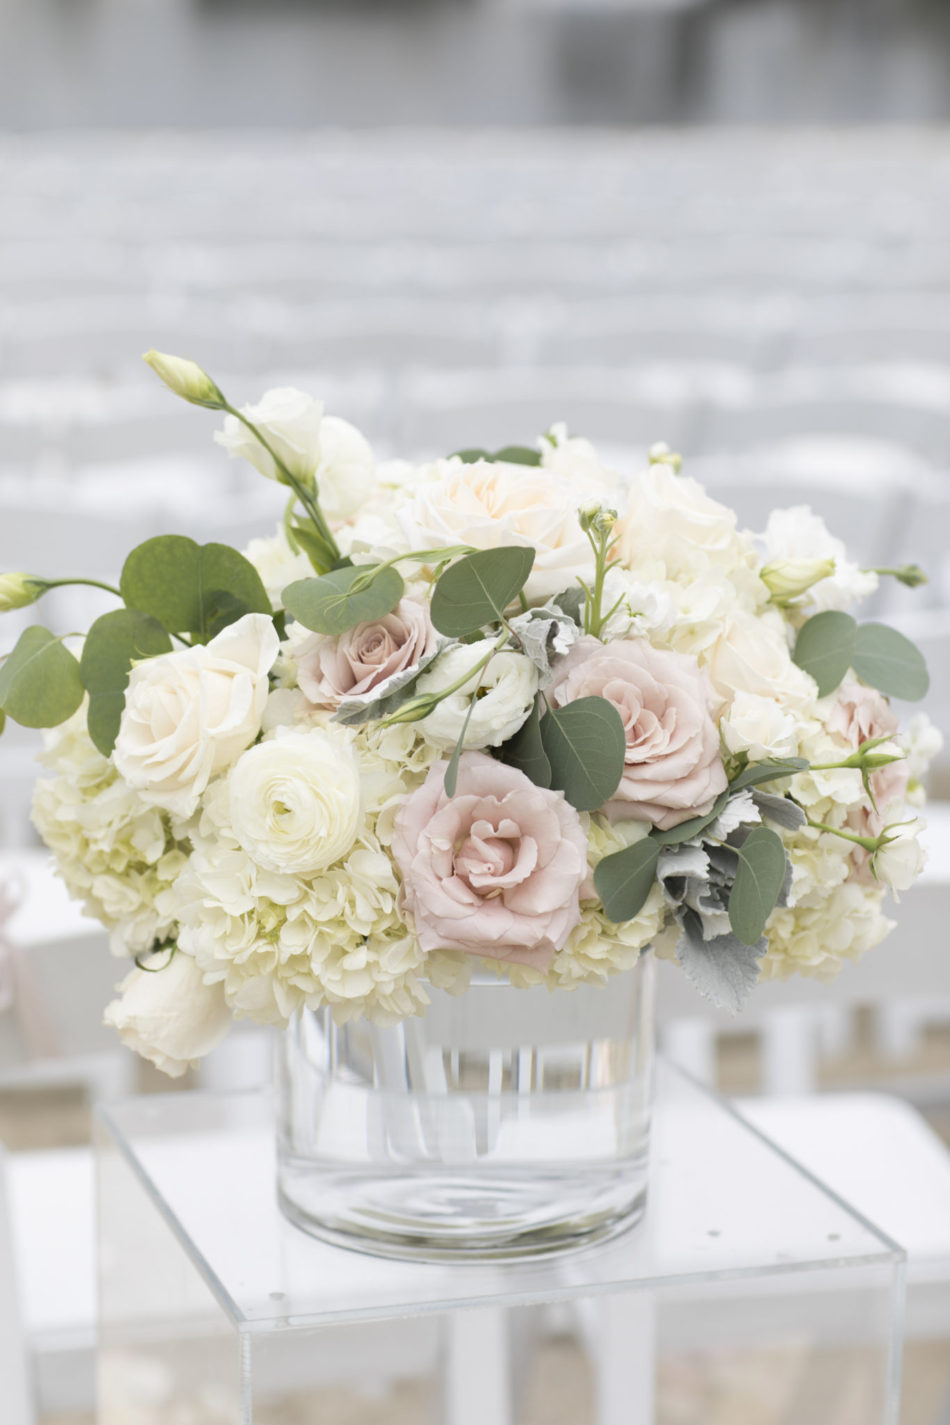 ceremony floral decor, blush floral design, white floral decor, floral design, florist, wedding florist, wedding flowers, orange county weddings, orange county wedding florist, orange county florist, orange county floral design, flowers by cina